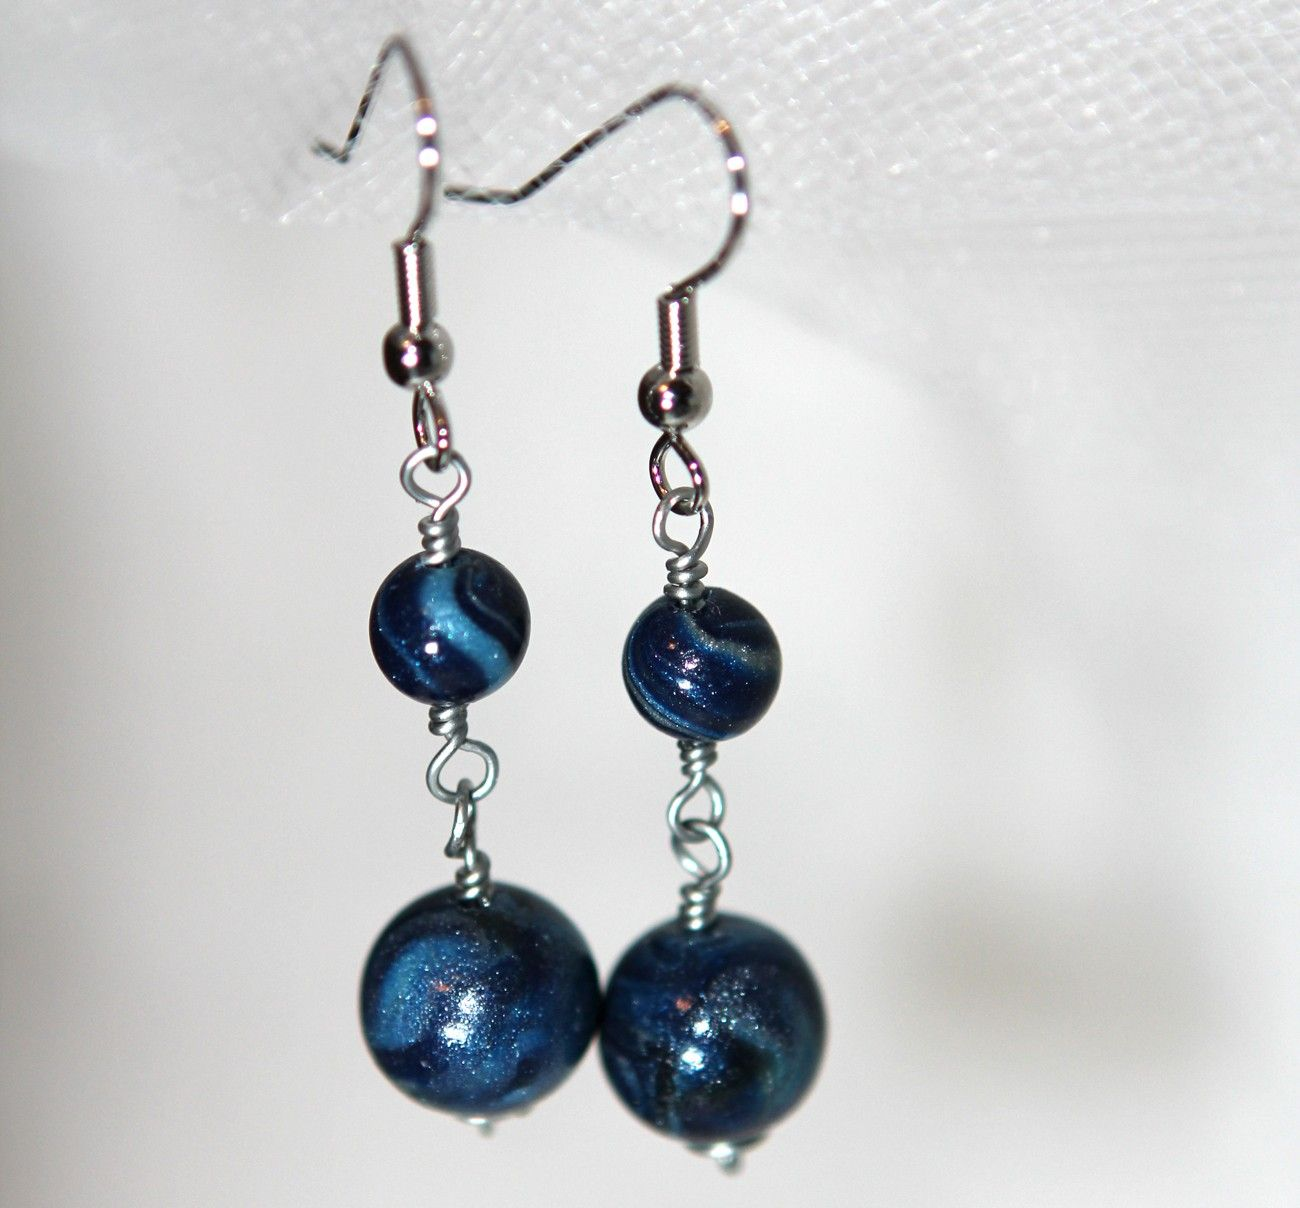 Blue Earrings - Wire wrapped Pearlescent - Wedding Bridal Bridesmaid Gifts. $25.00, via Etsy.